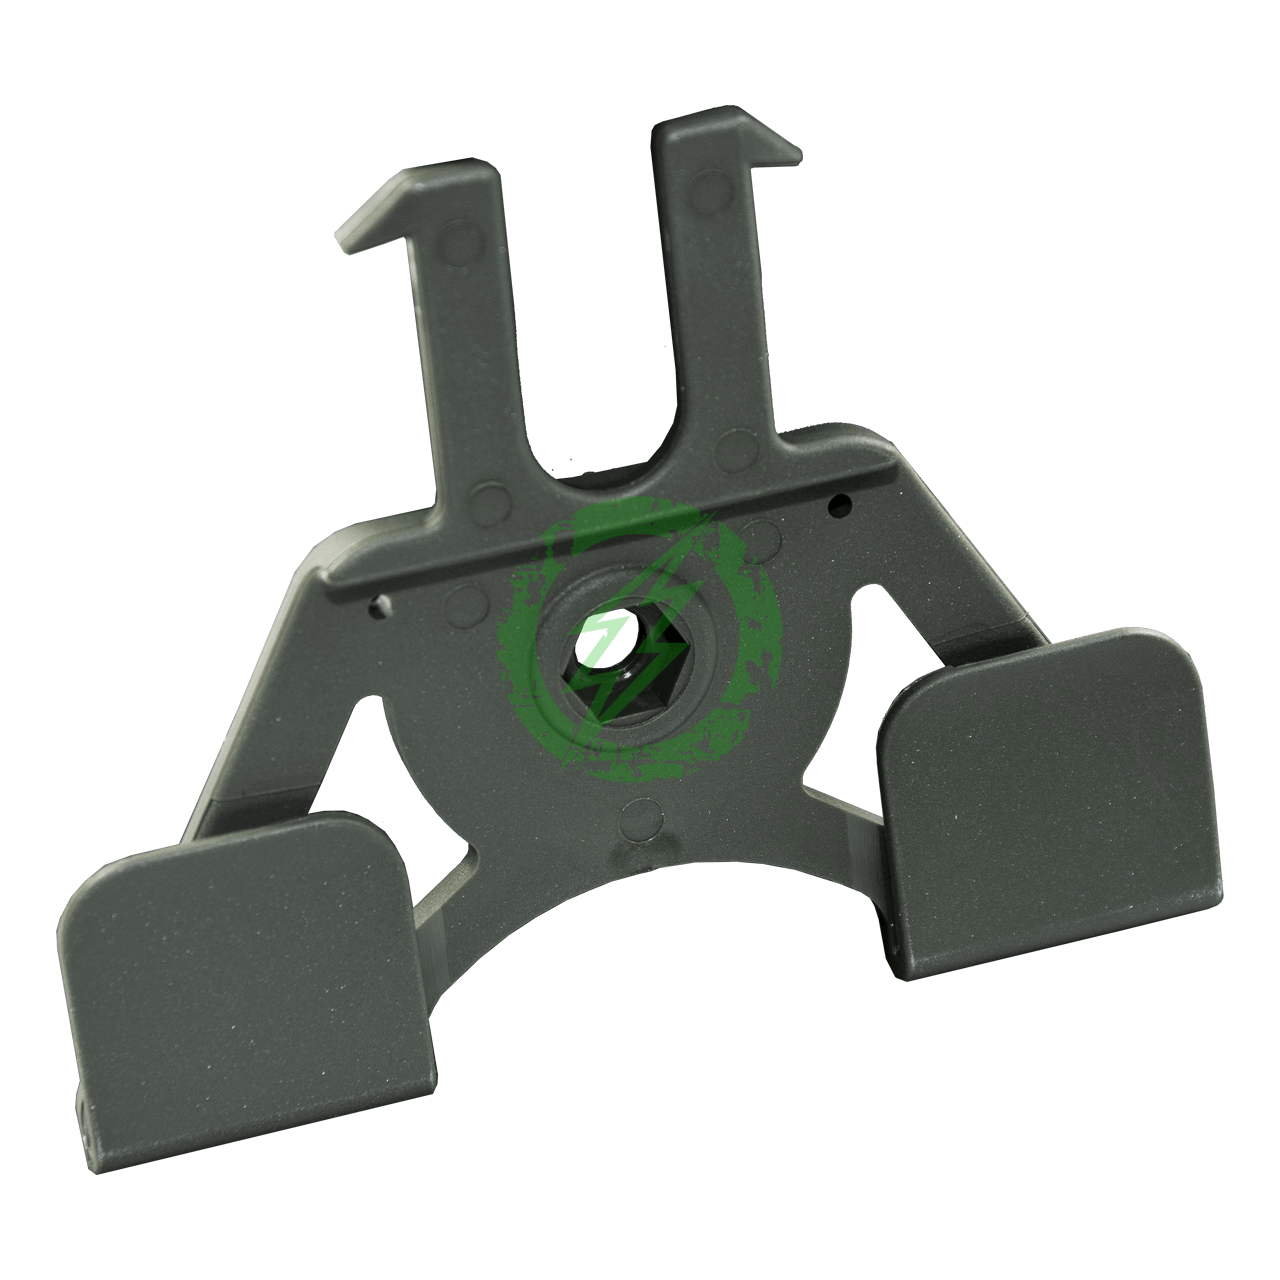 Cytac Amomax Molle Attachment Back